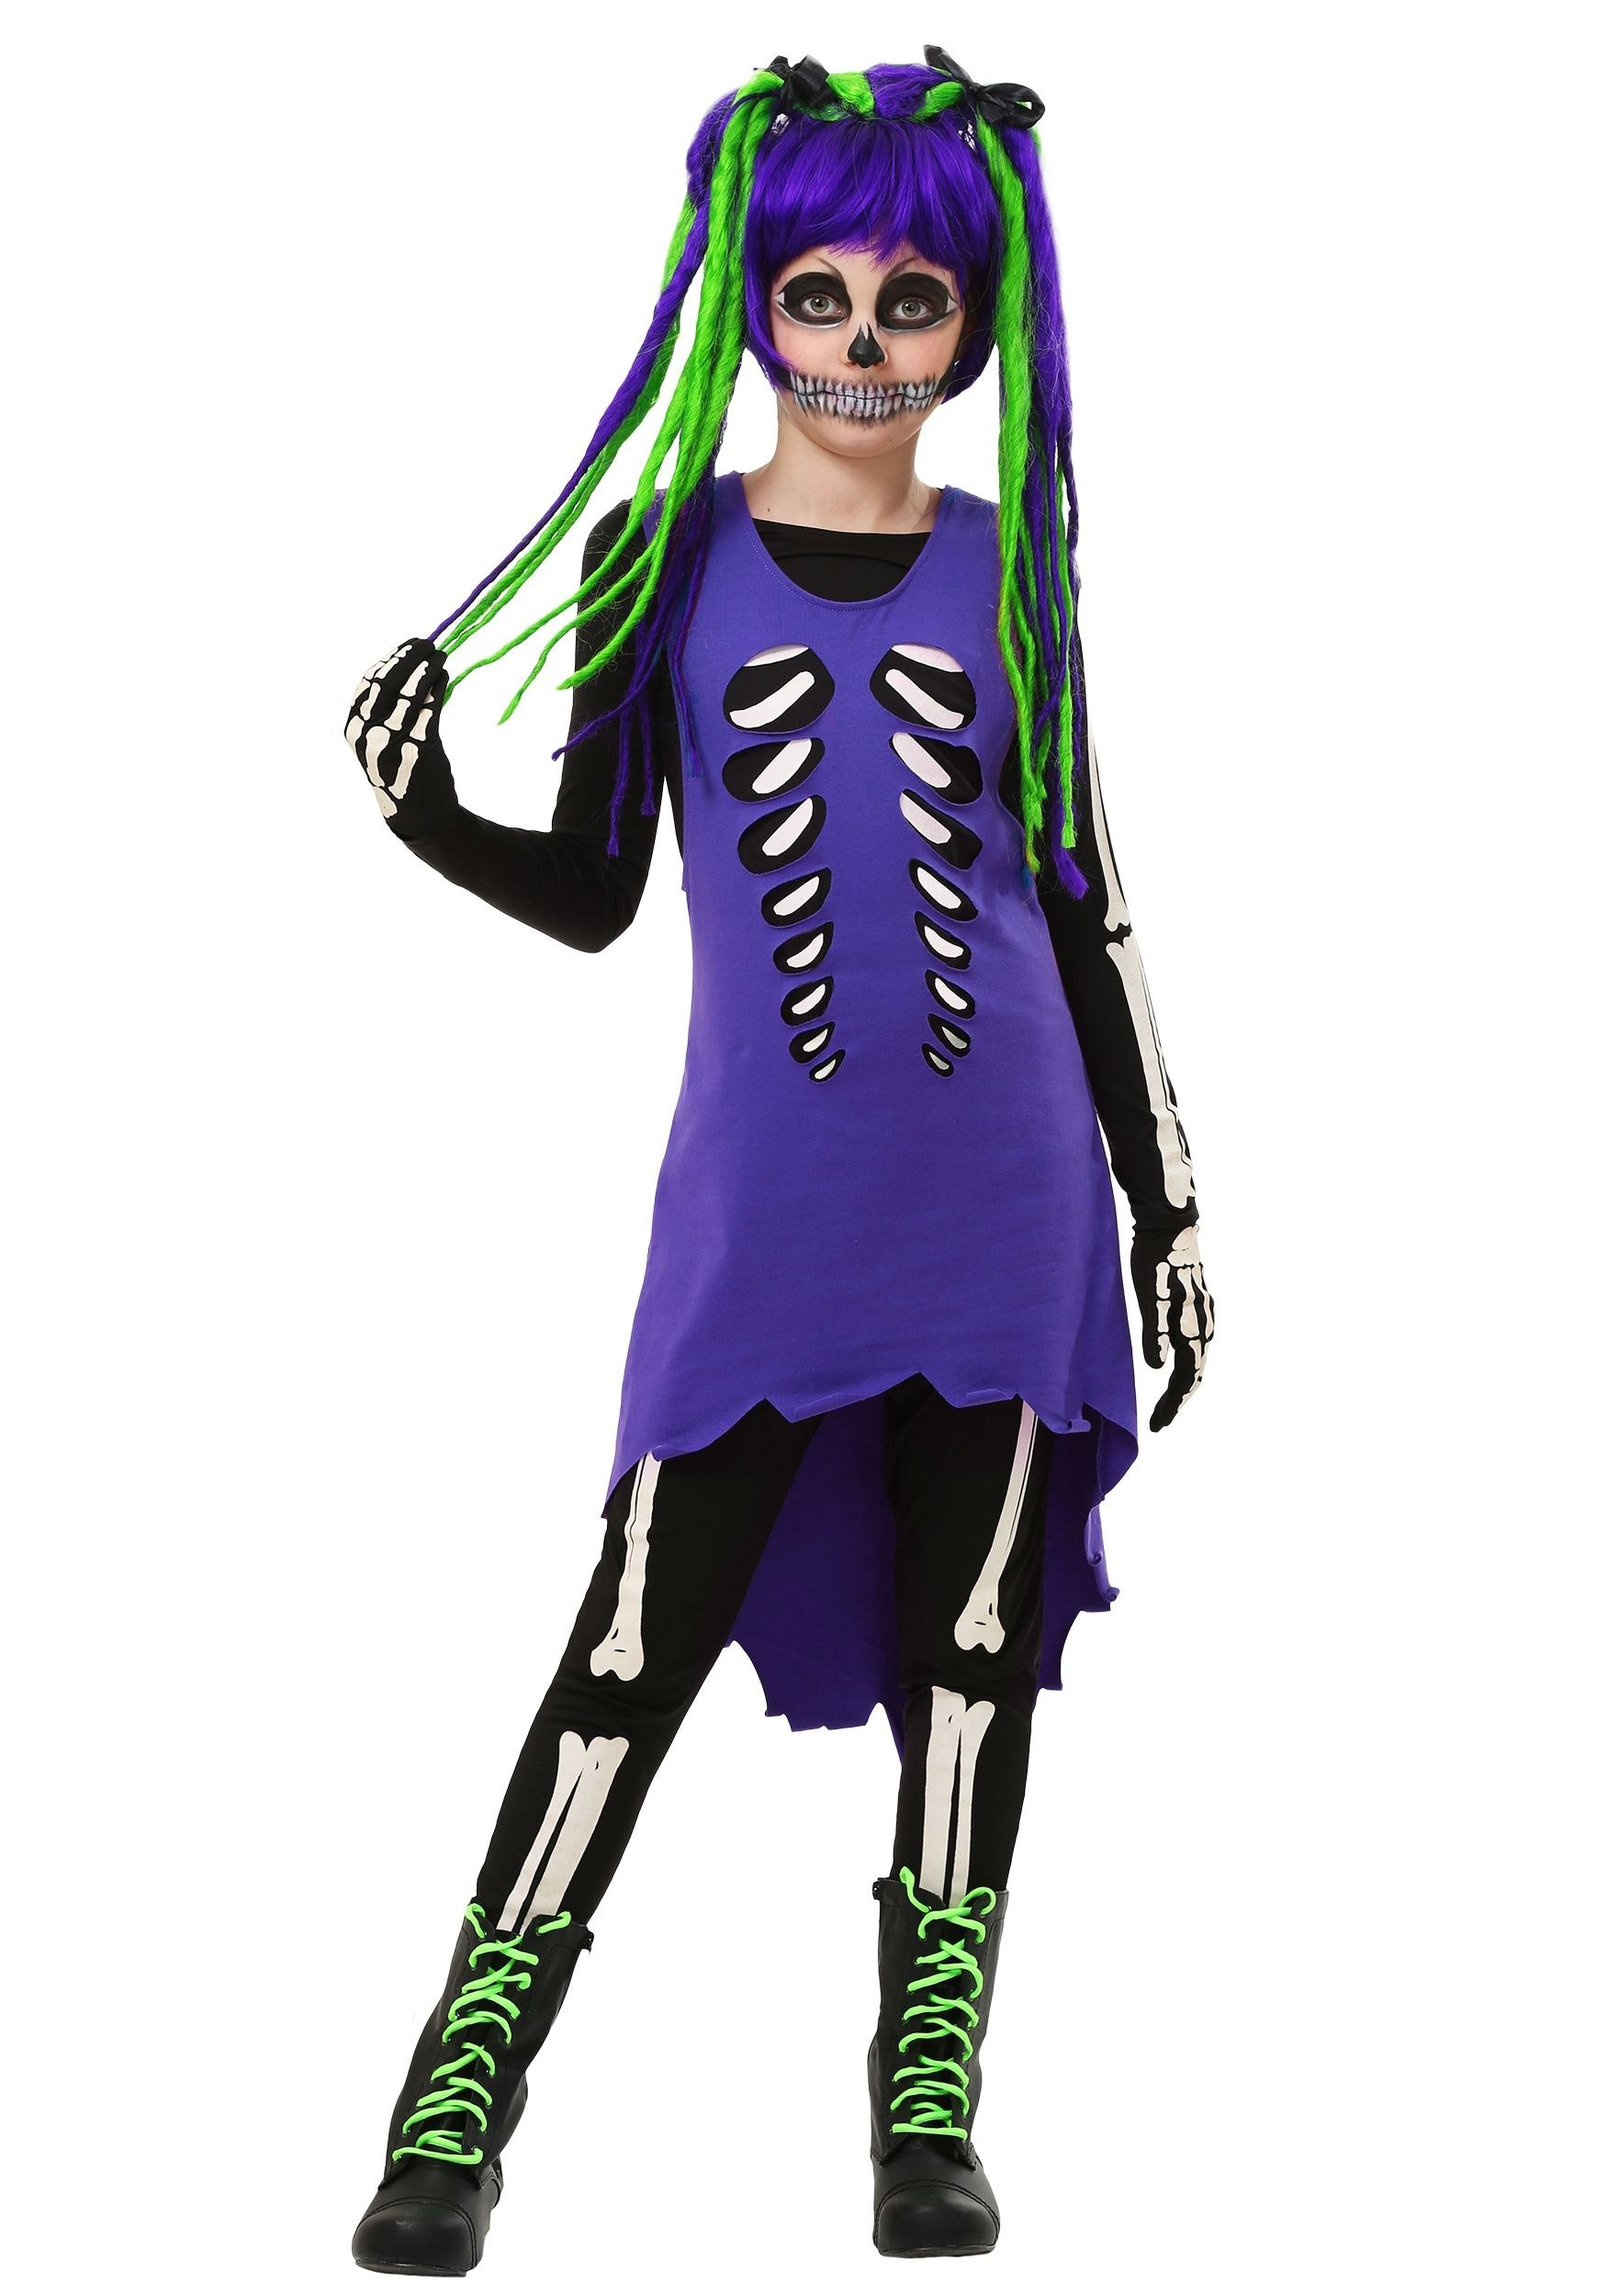 Cute kids Halloween costume ideas - Feel unique and spunky in this child purple and green skeleton costume! Have fun with bright colors while being the ...  sc 1 st  Pinterest & Cute kids Halloween costume ideas - Feel unique and spunky in this ...